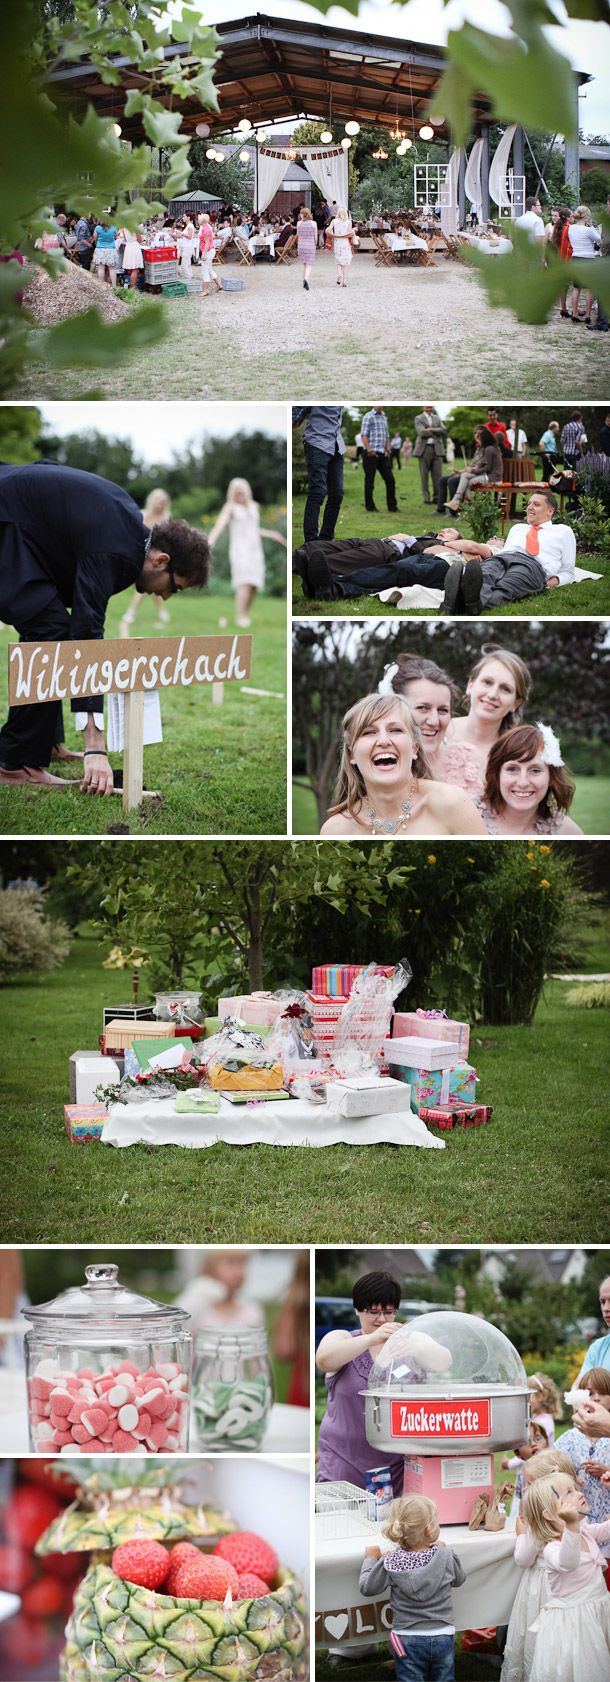 Regina und Andreas DIY-Vintage Hochzeit. yay for wedding swedish cubb game!